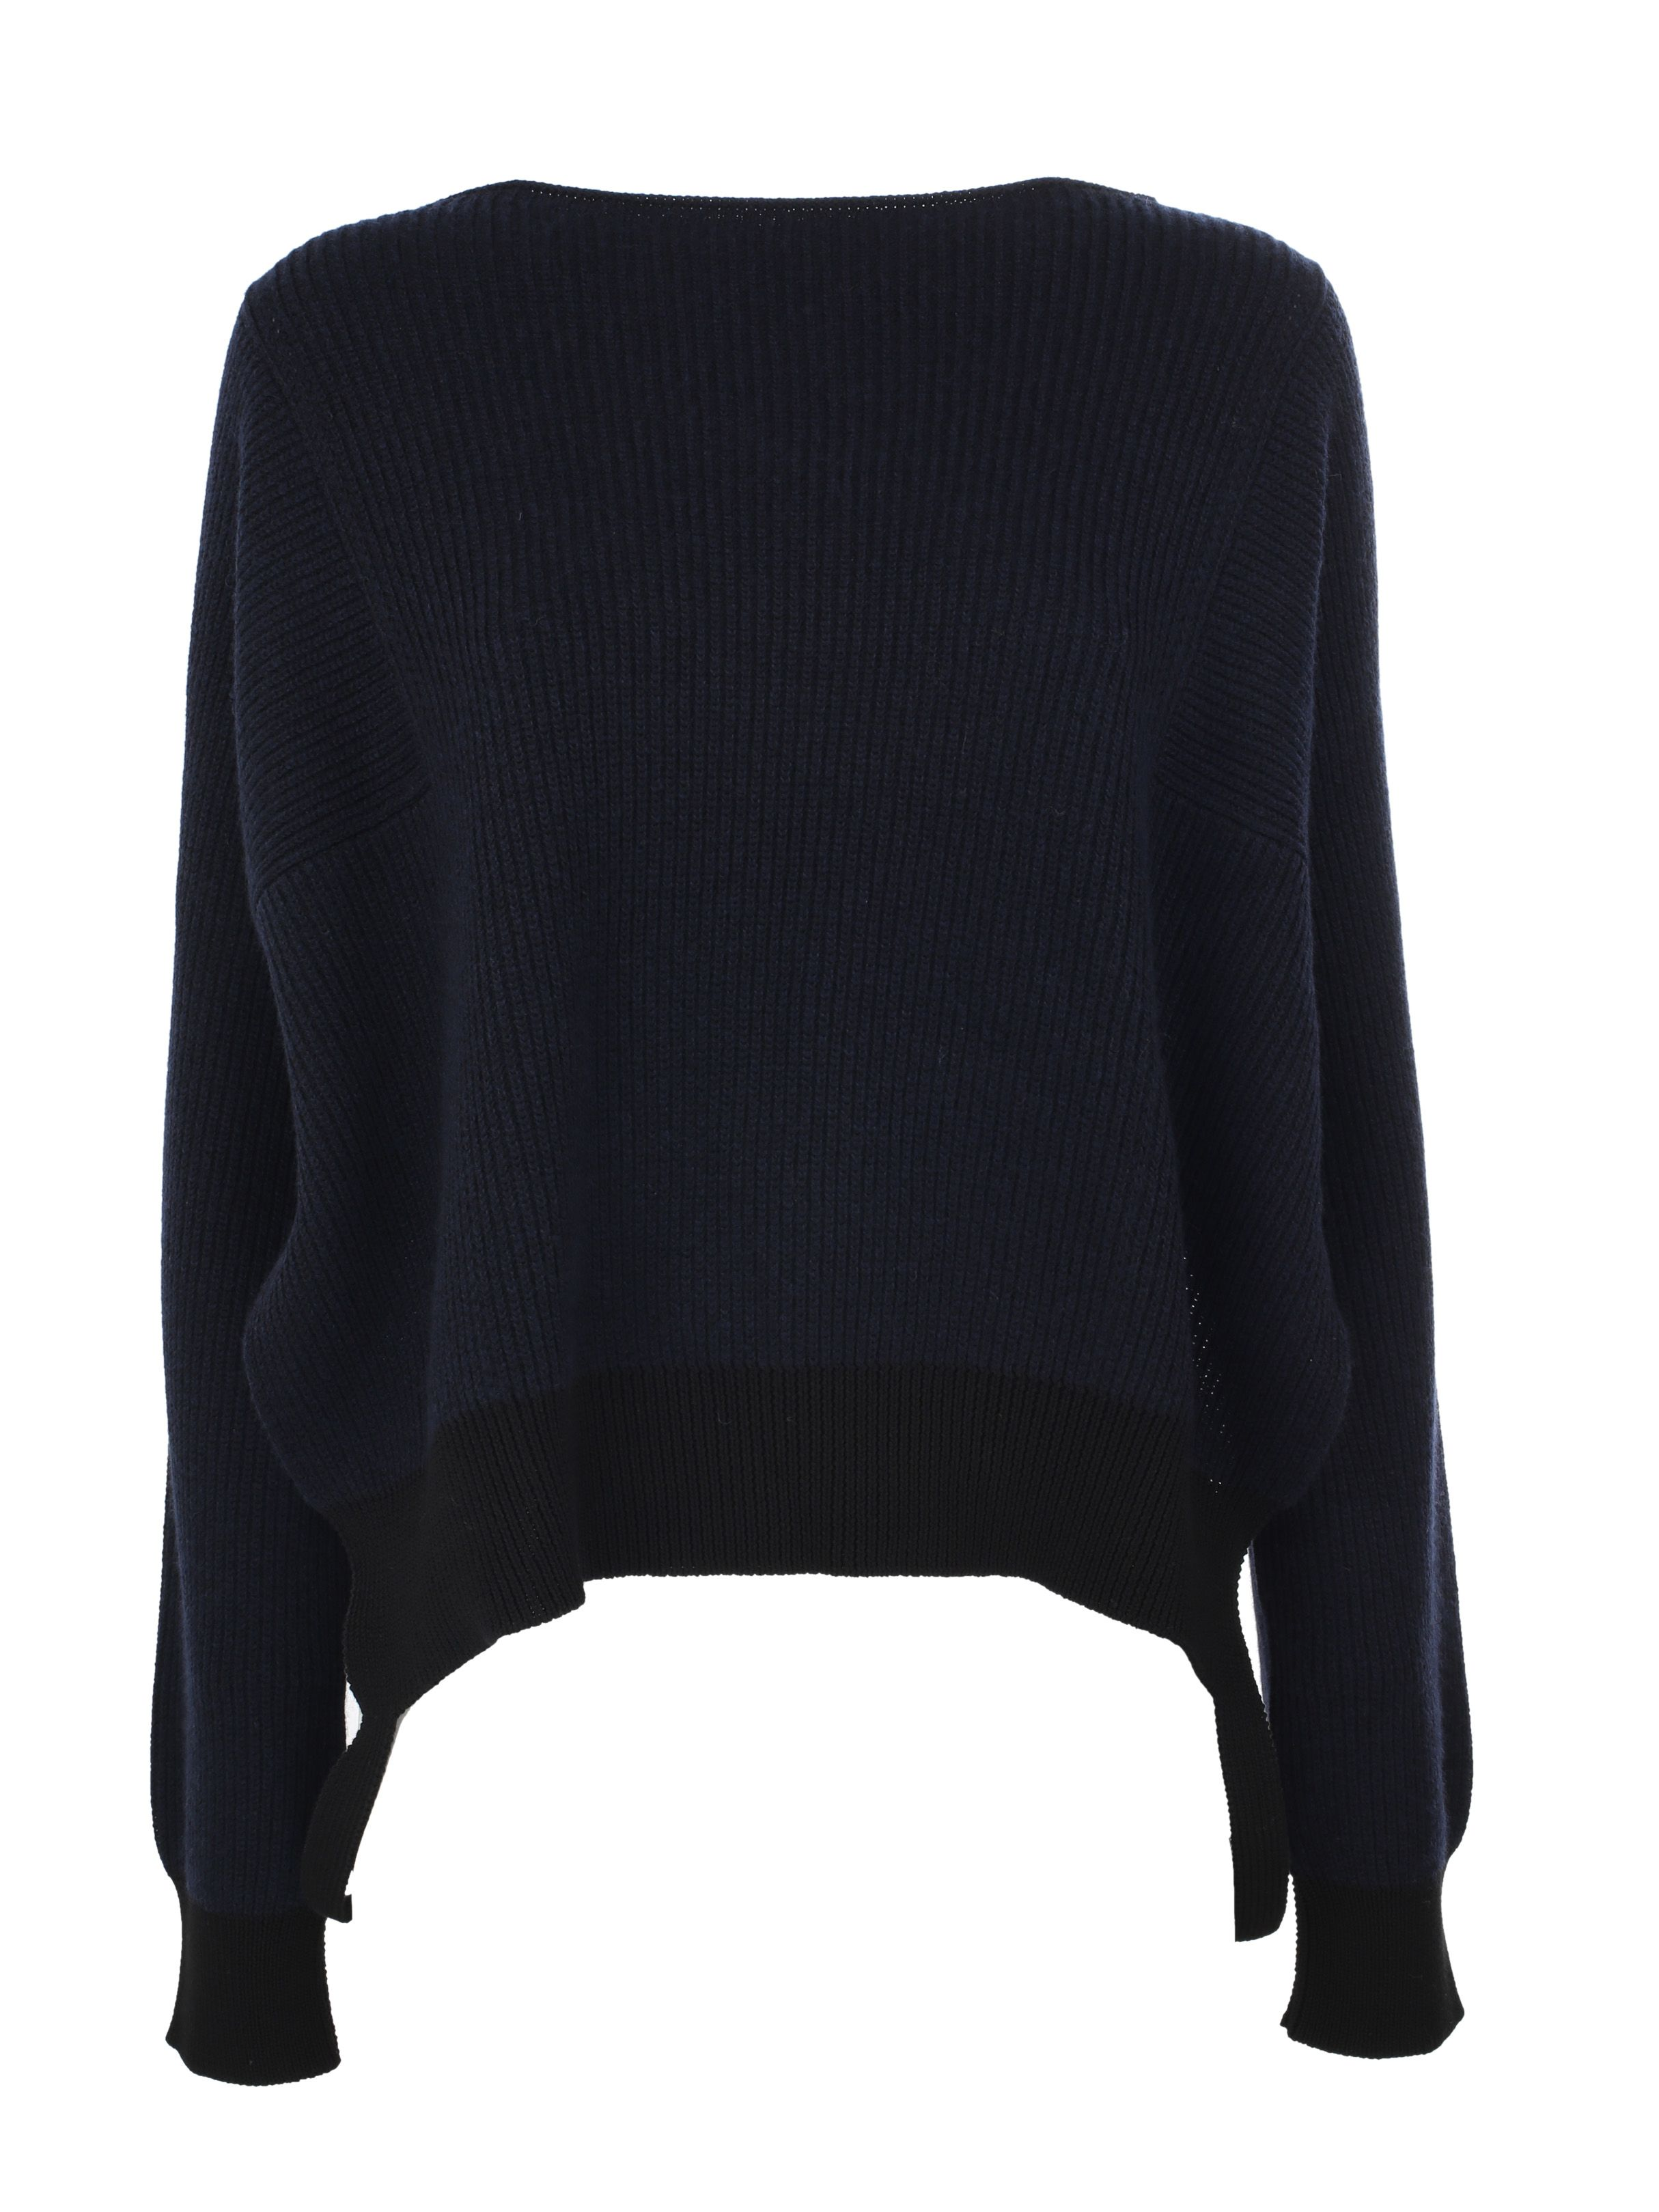 Helmut Lang Essential Sweater